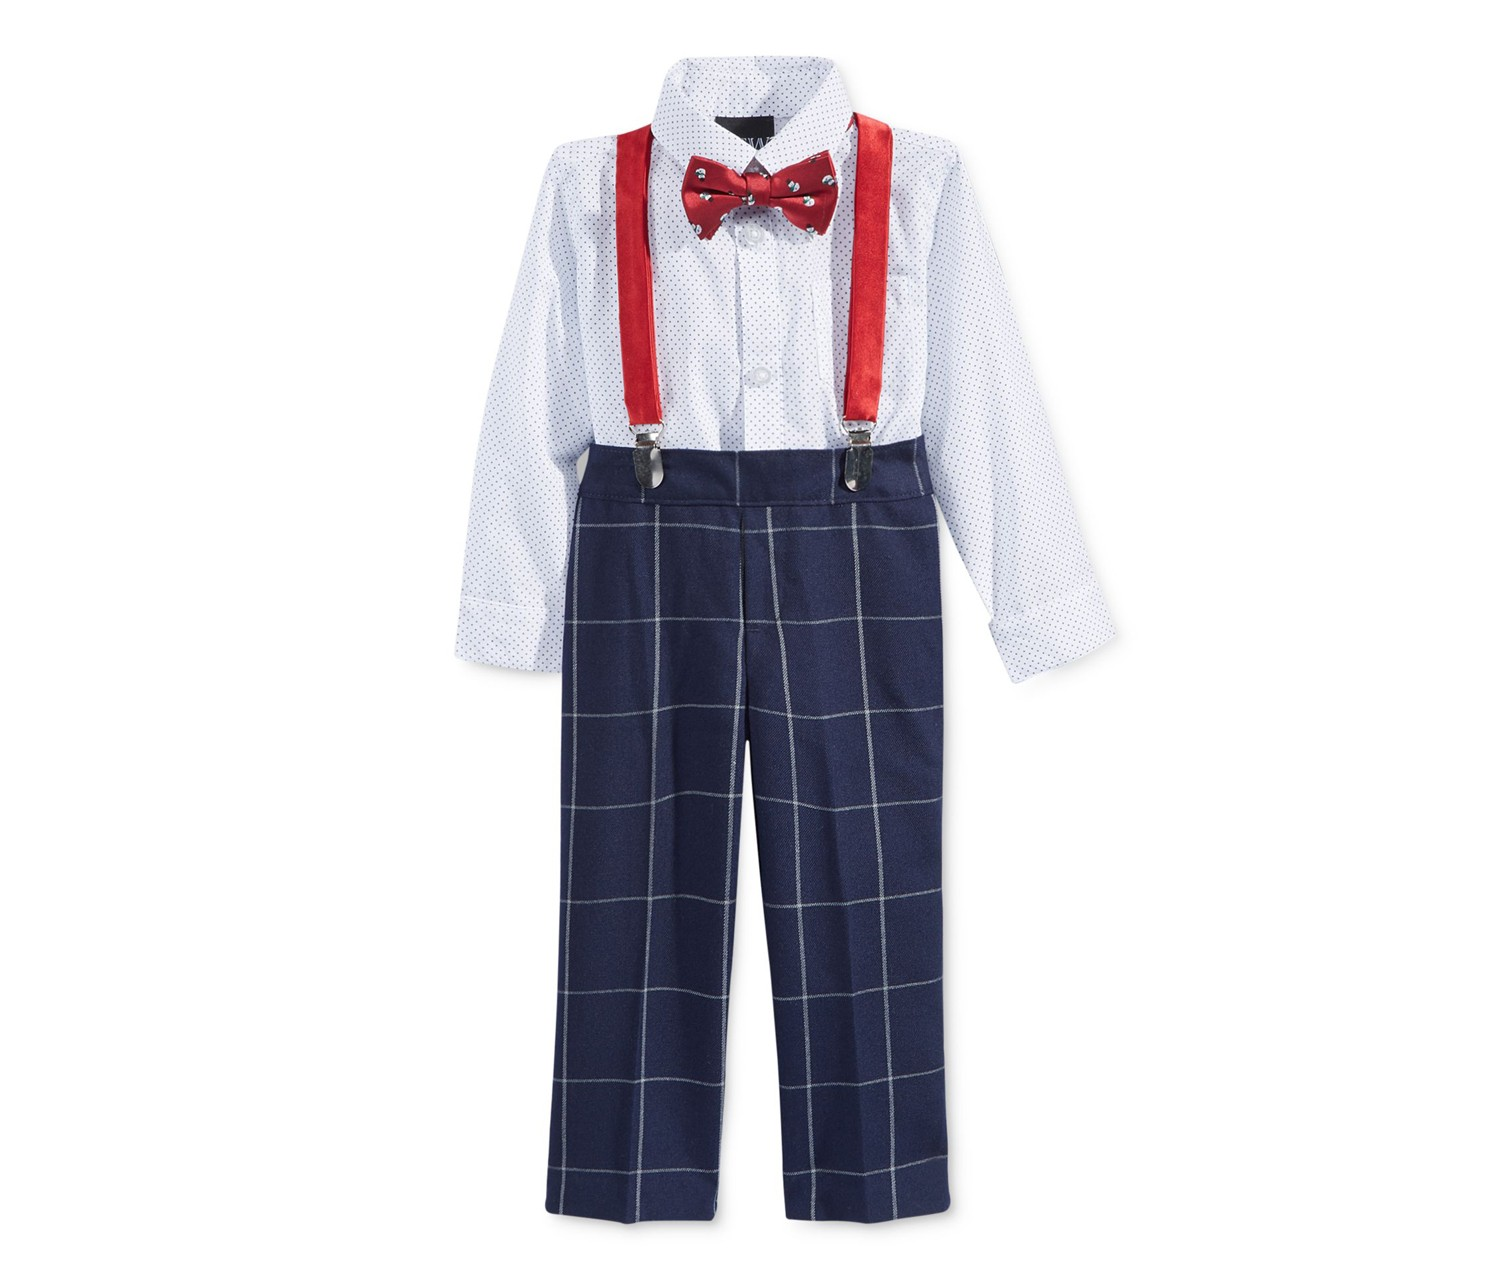 TFW Little Boy's 3 Pcs  Bow Tie Suspenders Shirt, Navy Multi